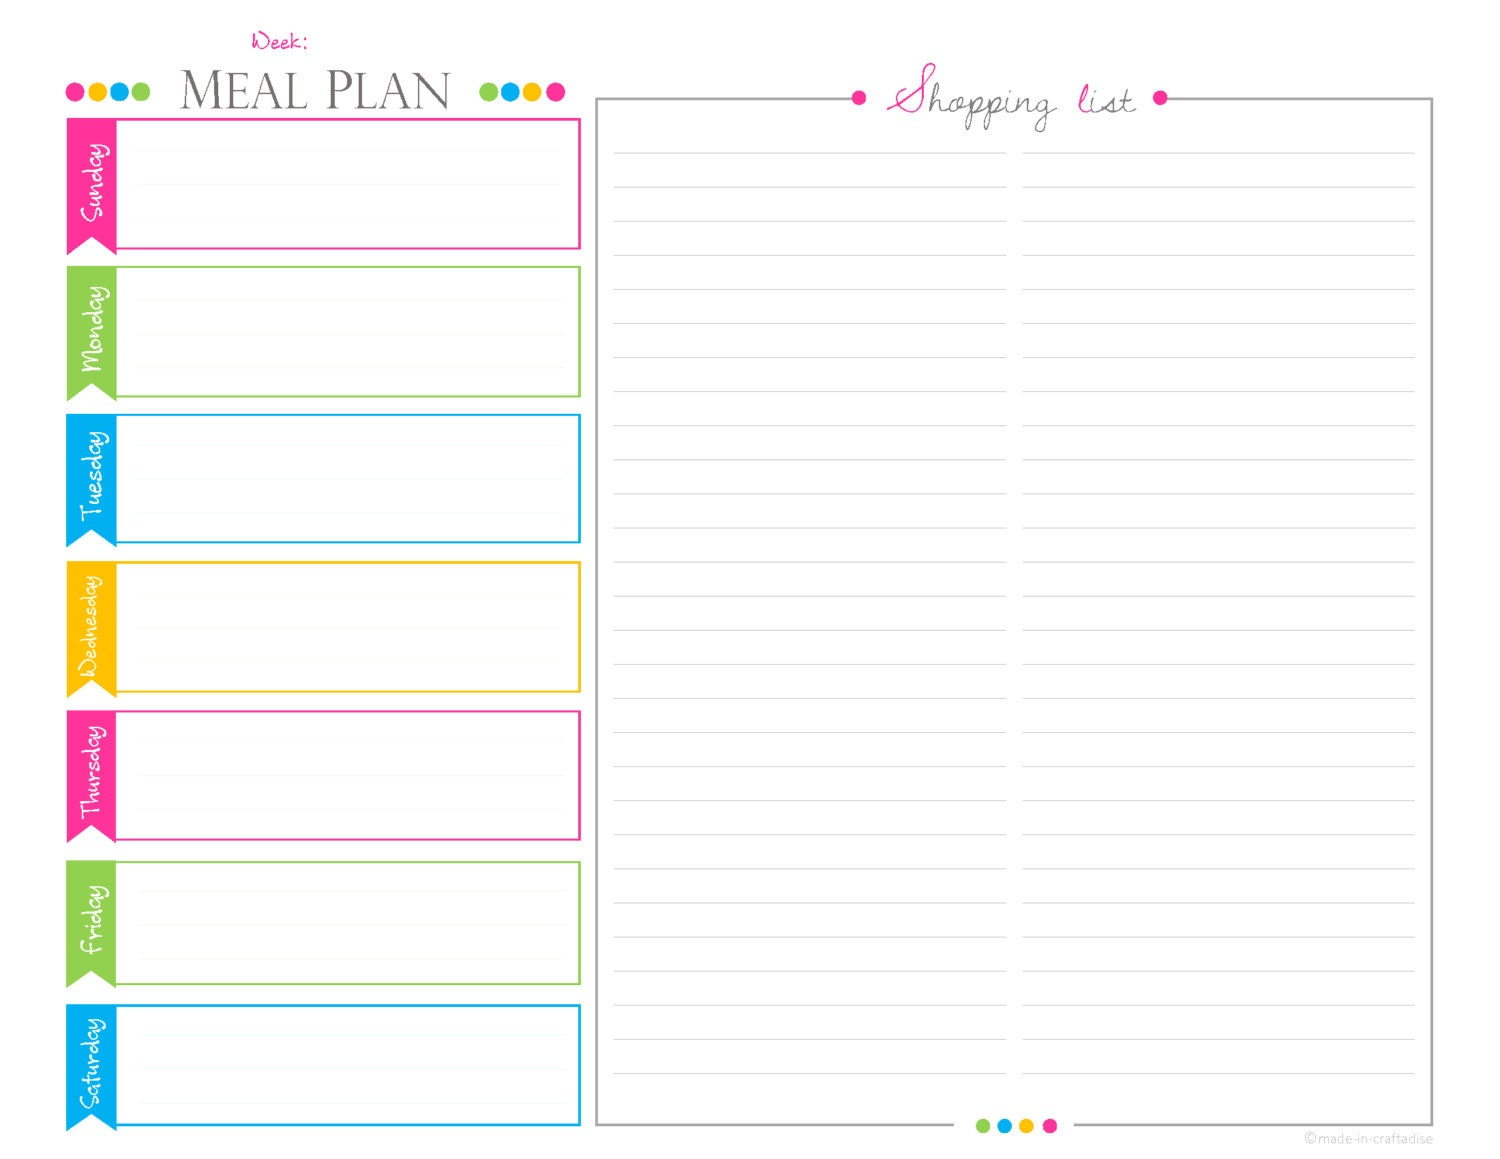 meal planning template with grocery list - weekly meal planningshopping list pdf planner landscape